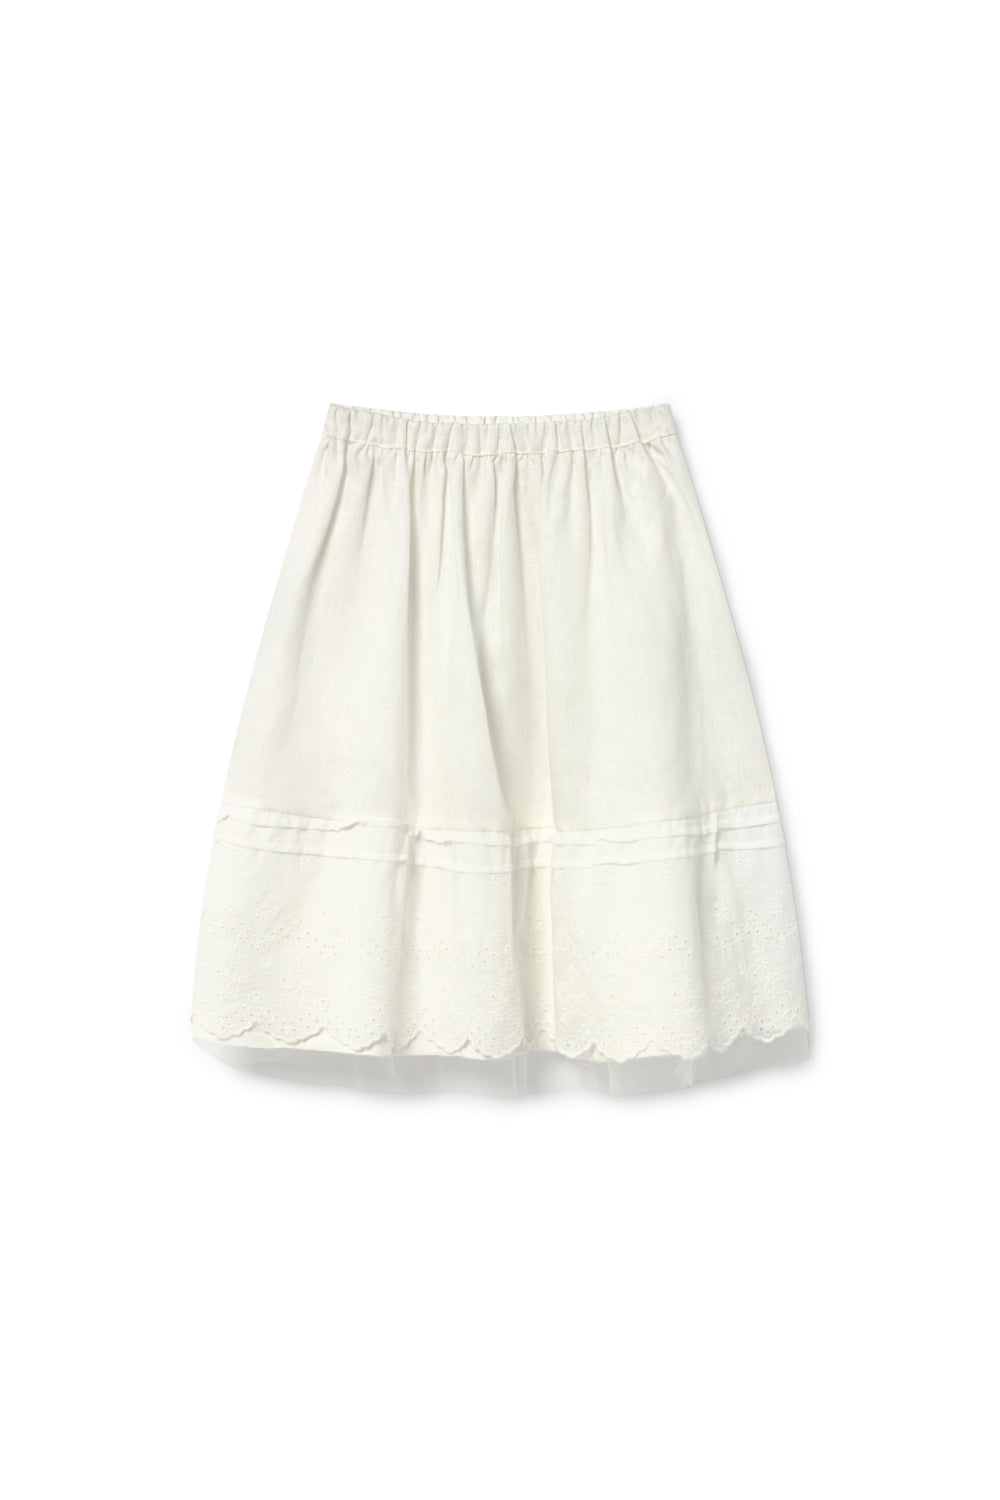 Villanelle LCF Skirt